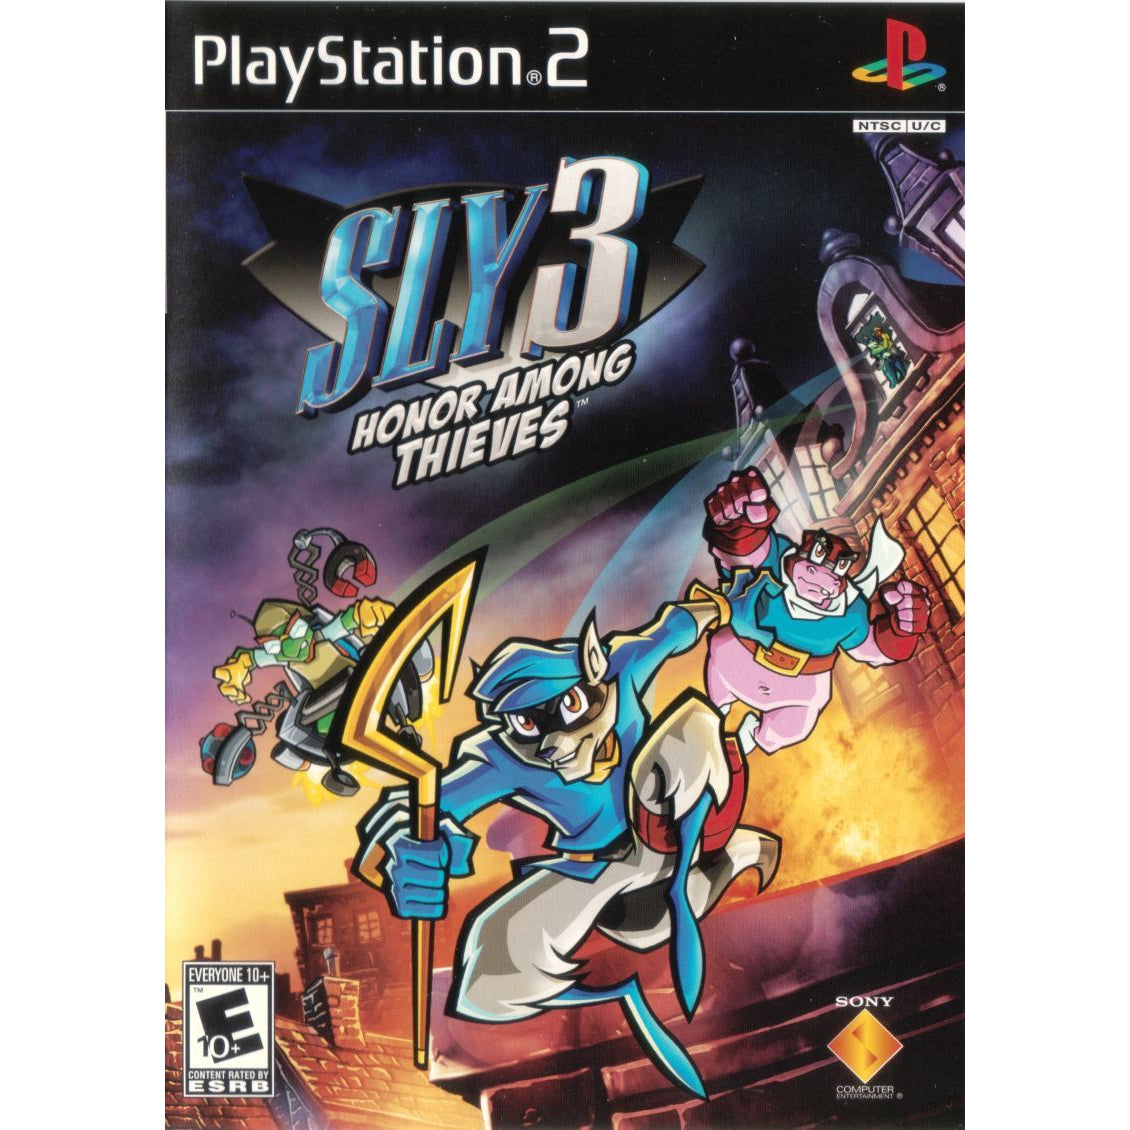 Sly 3: Honor Among Thieves - PlayStation 2 (PS2) Game Complete - YourGamingShop.com - Buy, Sell, Trade Video Games Online. 120 Day Warranty. Satisfaction Guaranteed.